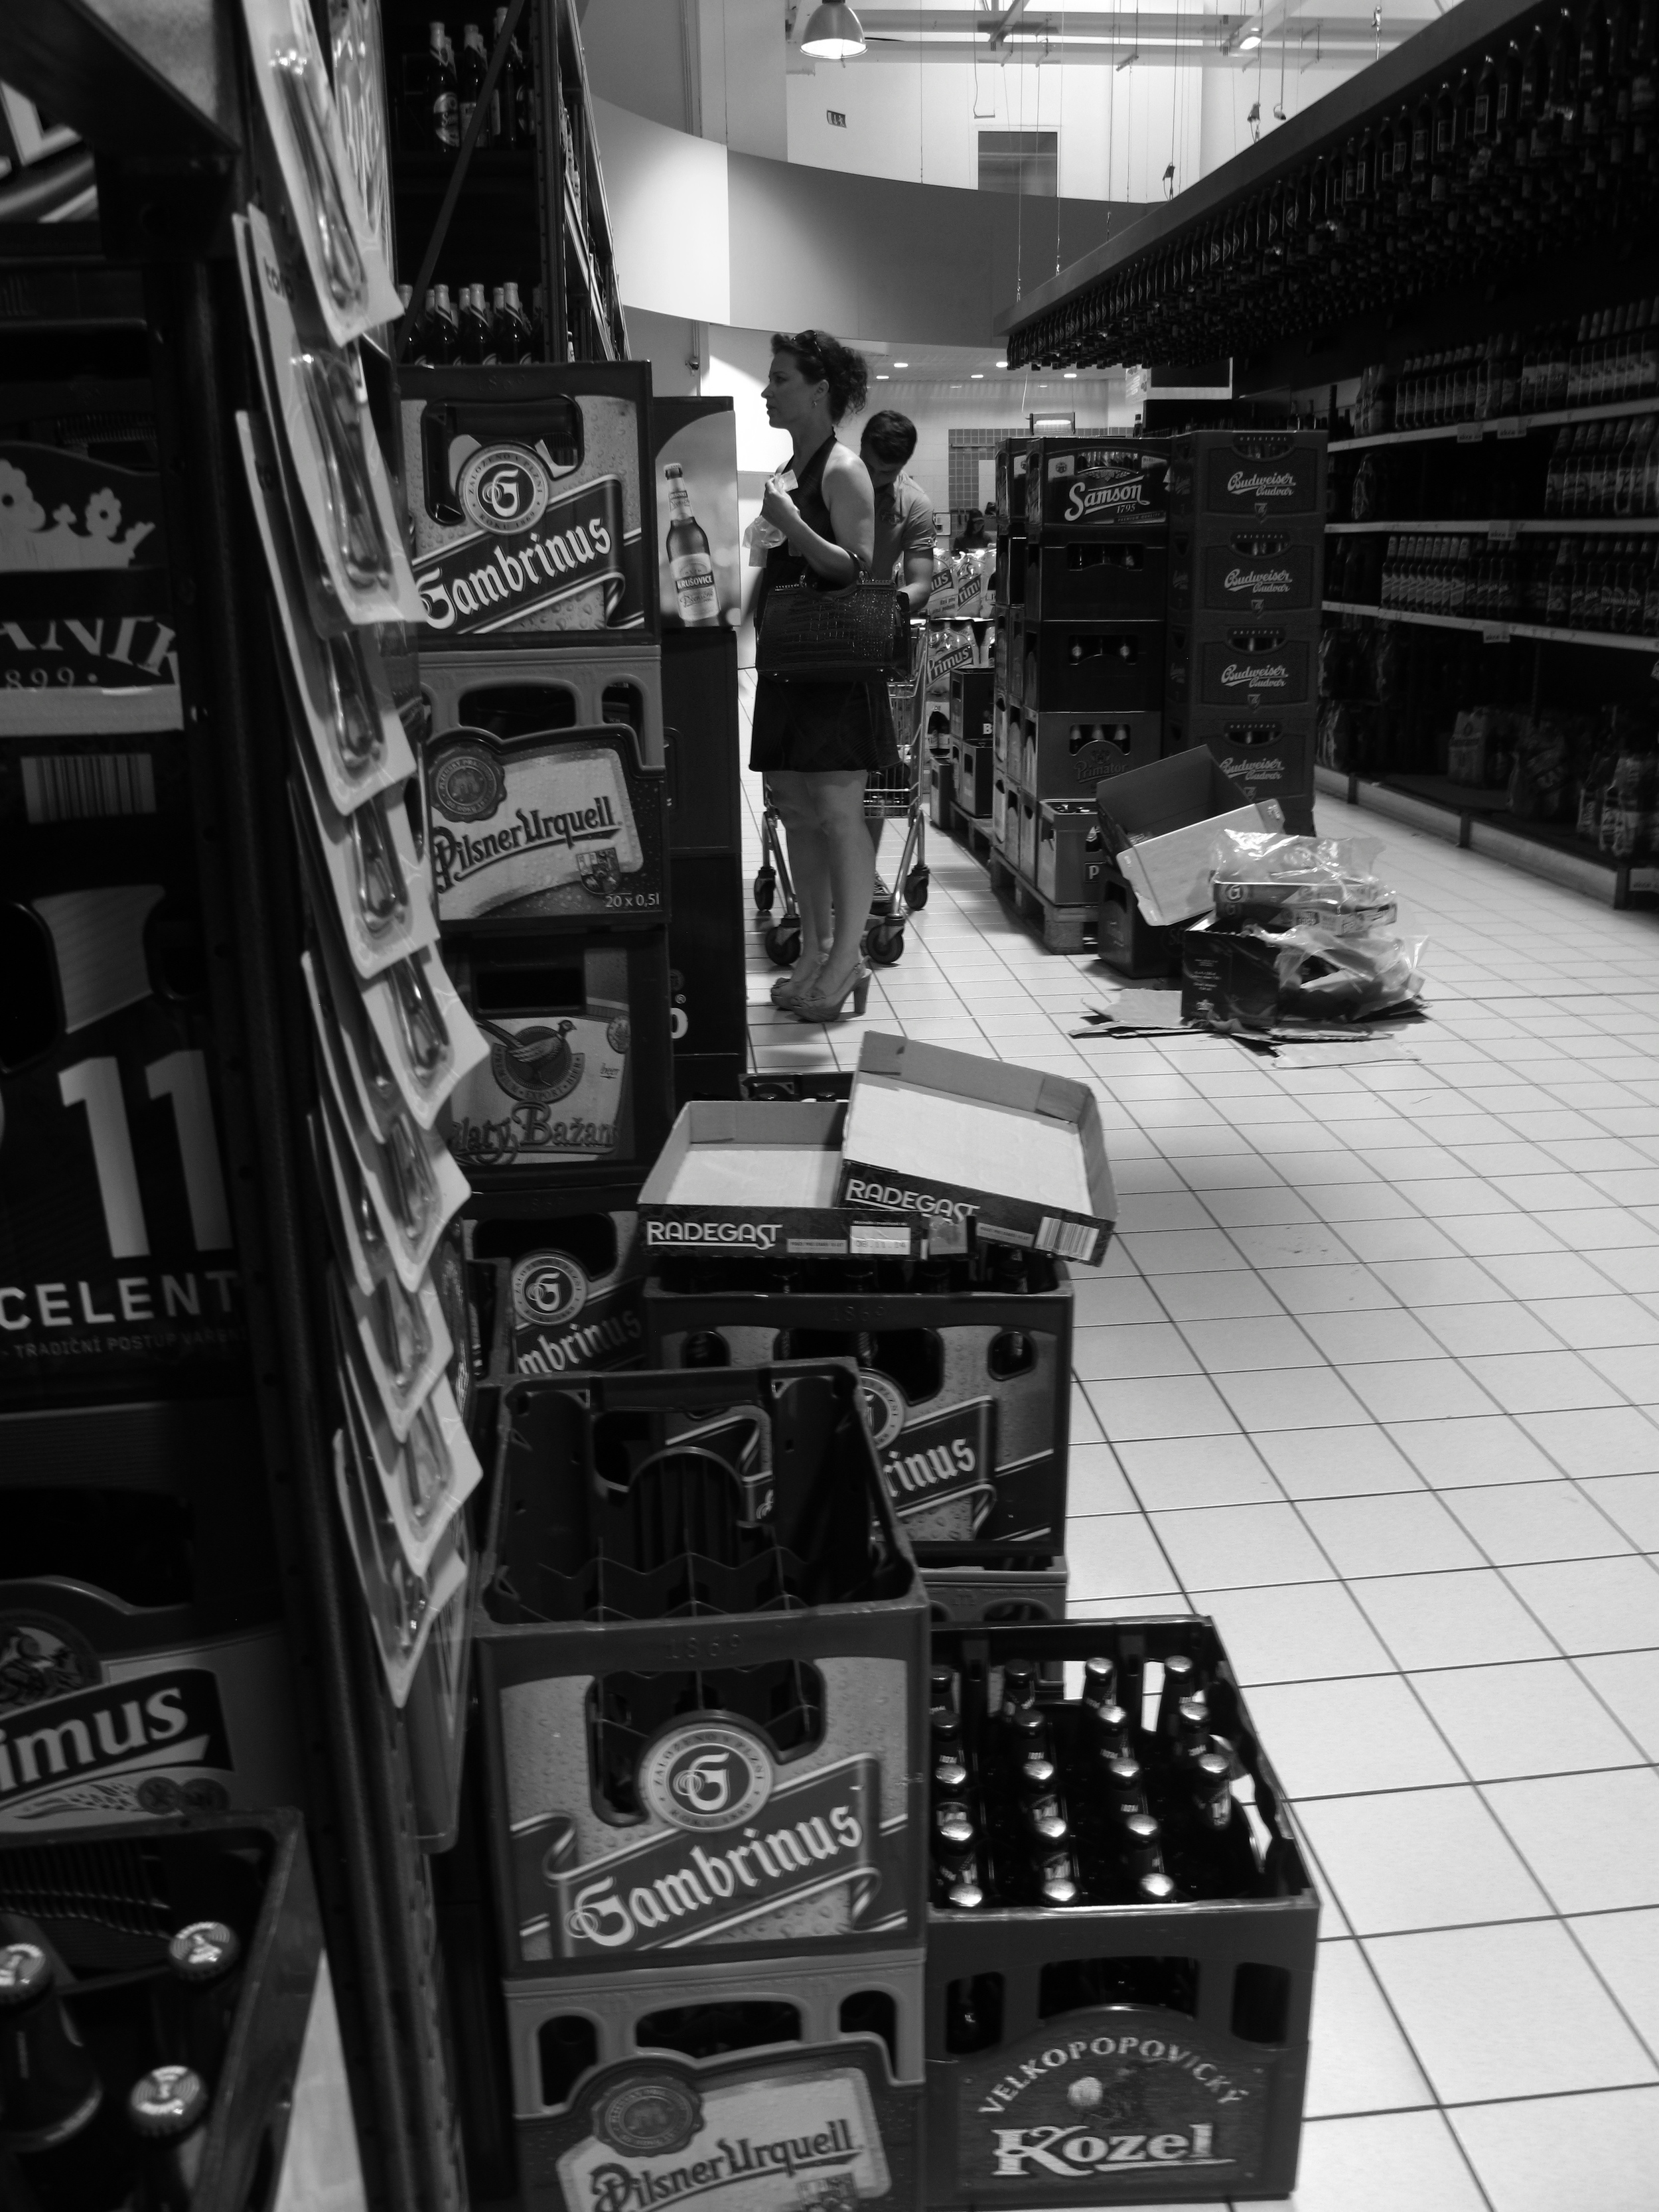 The huge beer section at Czech Republic supermarkets.